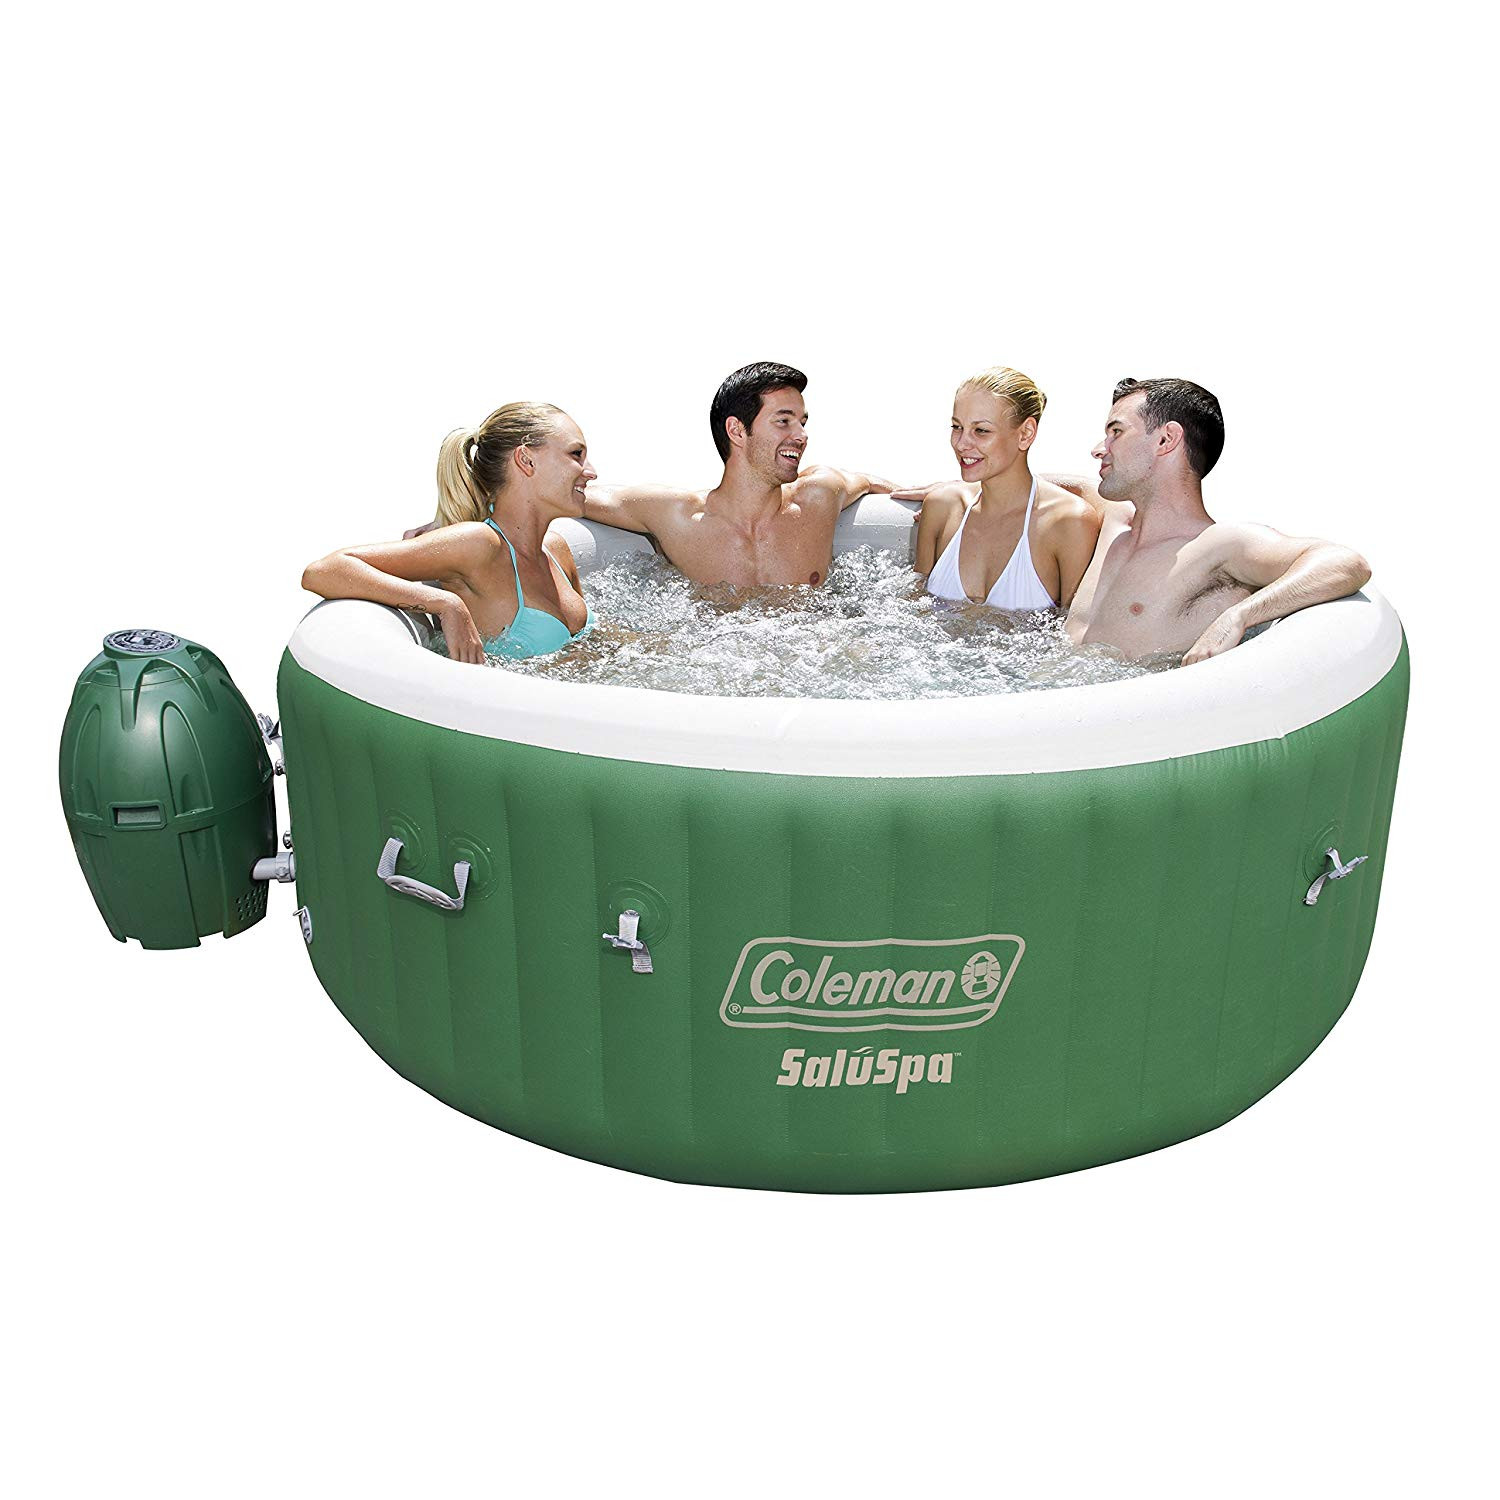 11 Stunning Most Expensive Vase In the World 2021 free download most expensive vase in the world of amazon com coleman saluspa inflatable hot tub garden outdoor inside 81ryfcoosdl sl1500